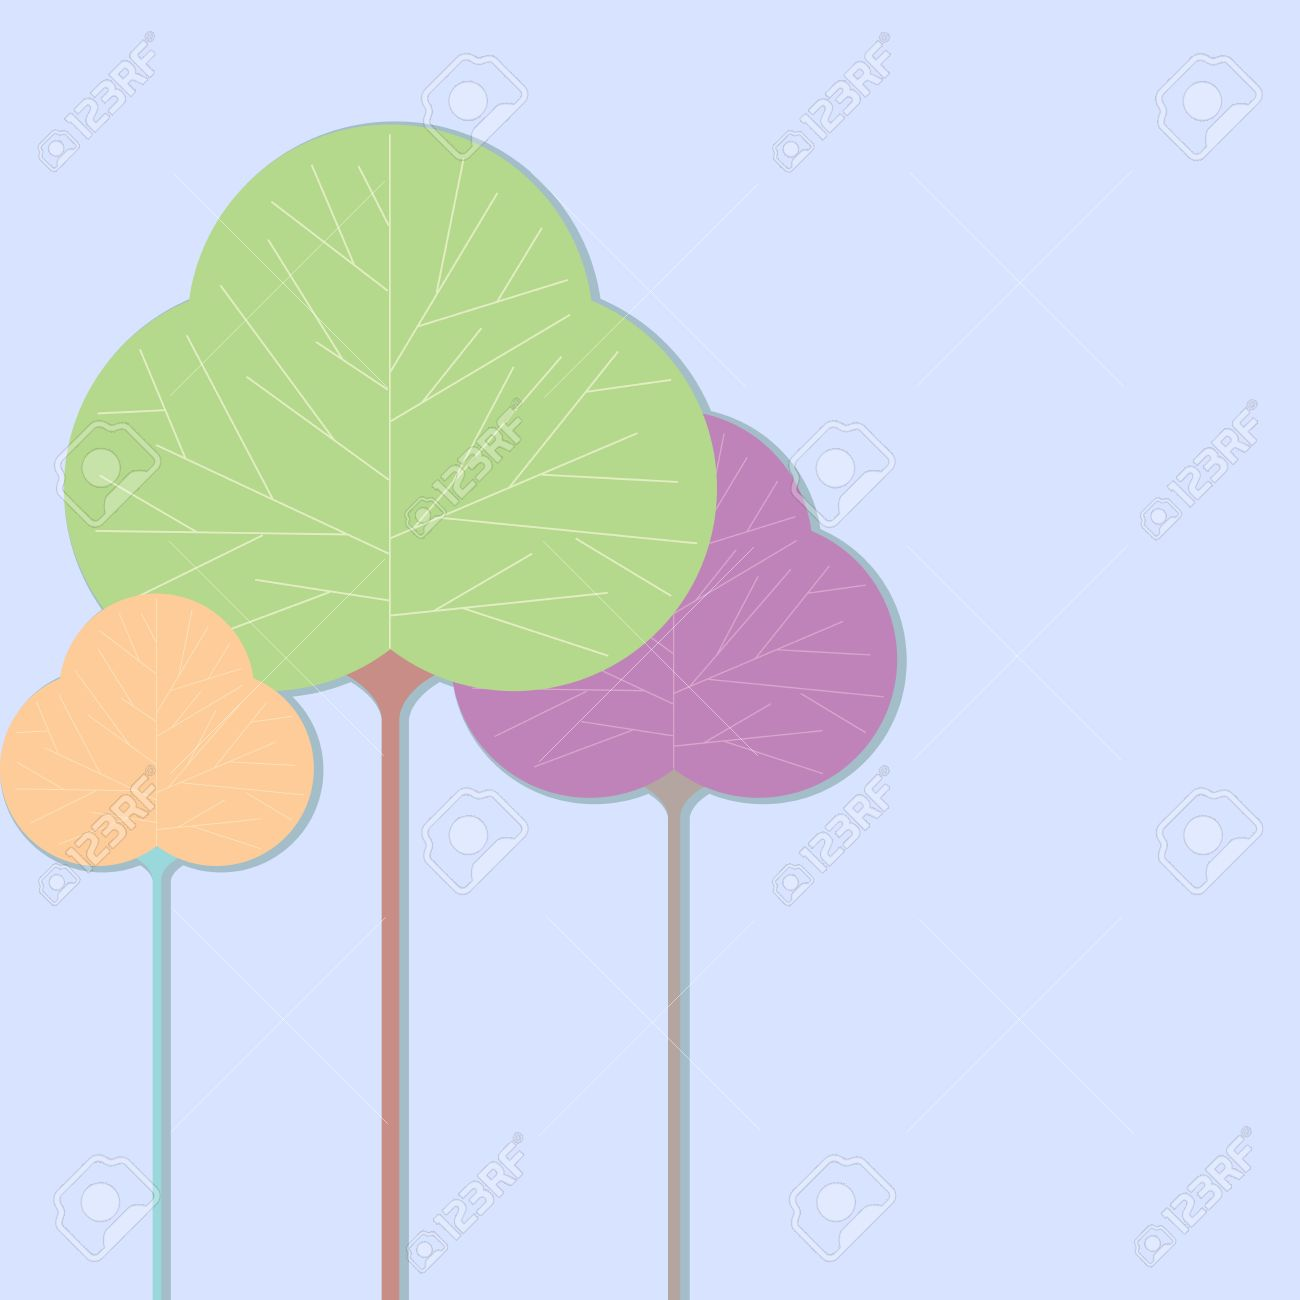 Three Leaf Shaped Tree Illustrations On A Solid Color Background.